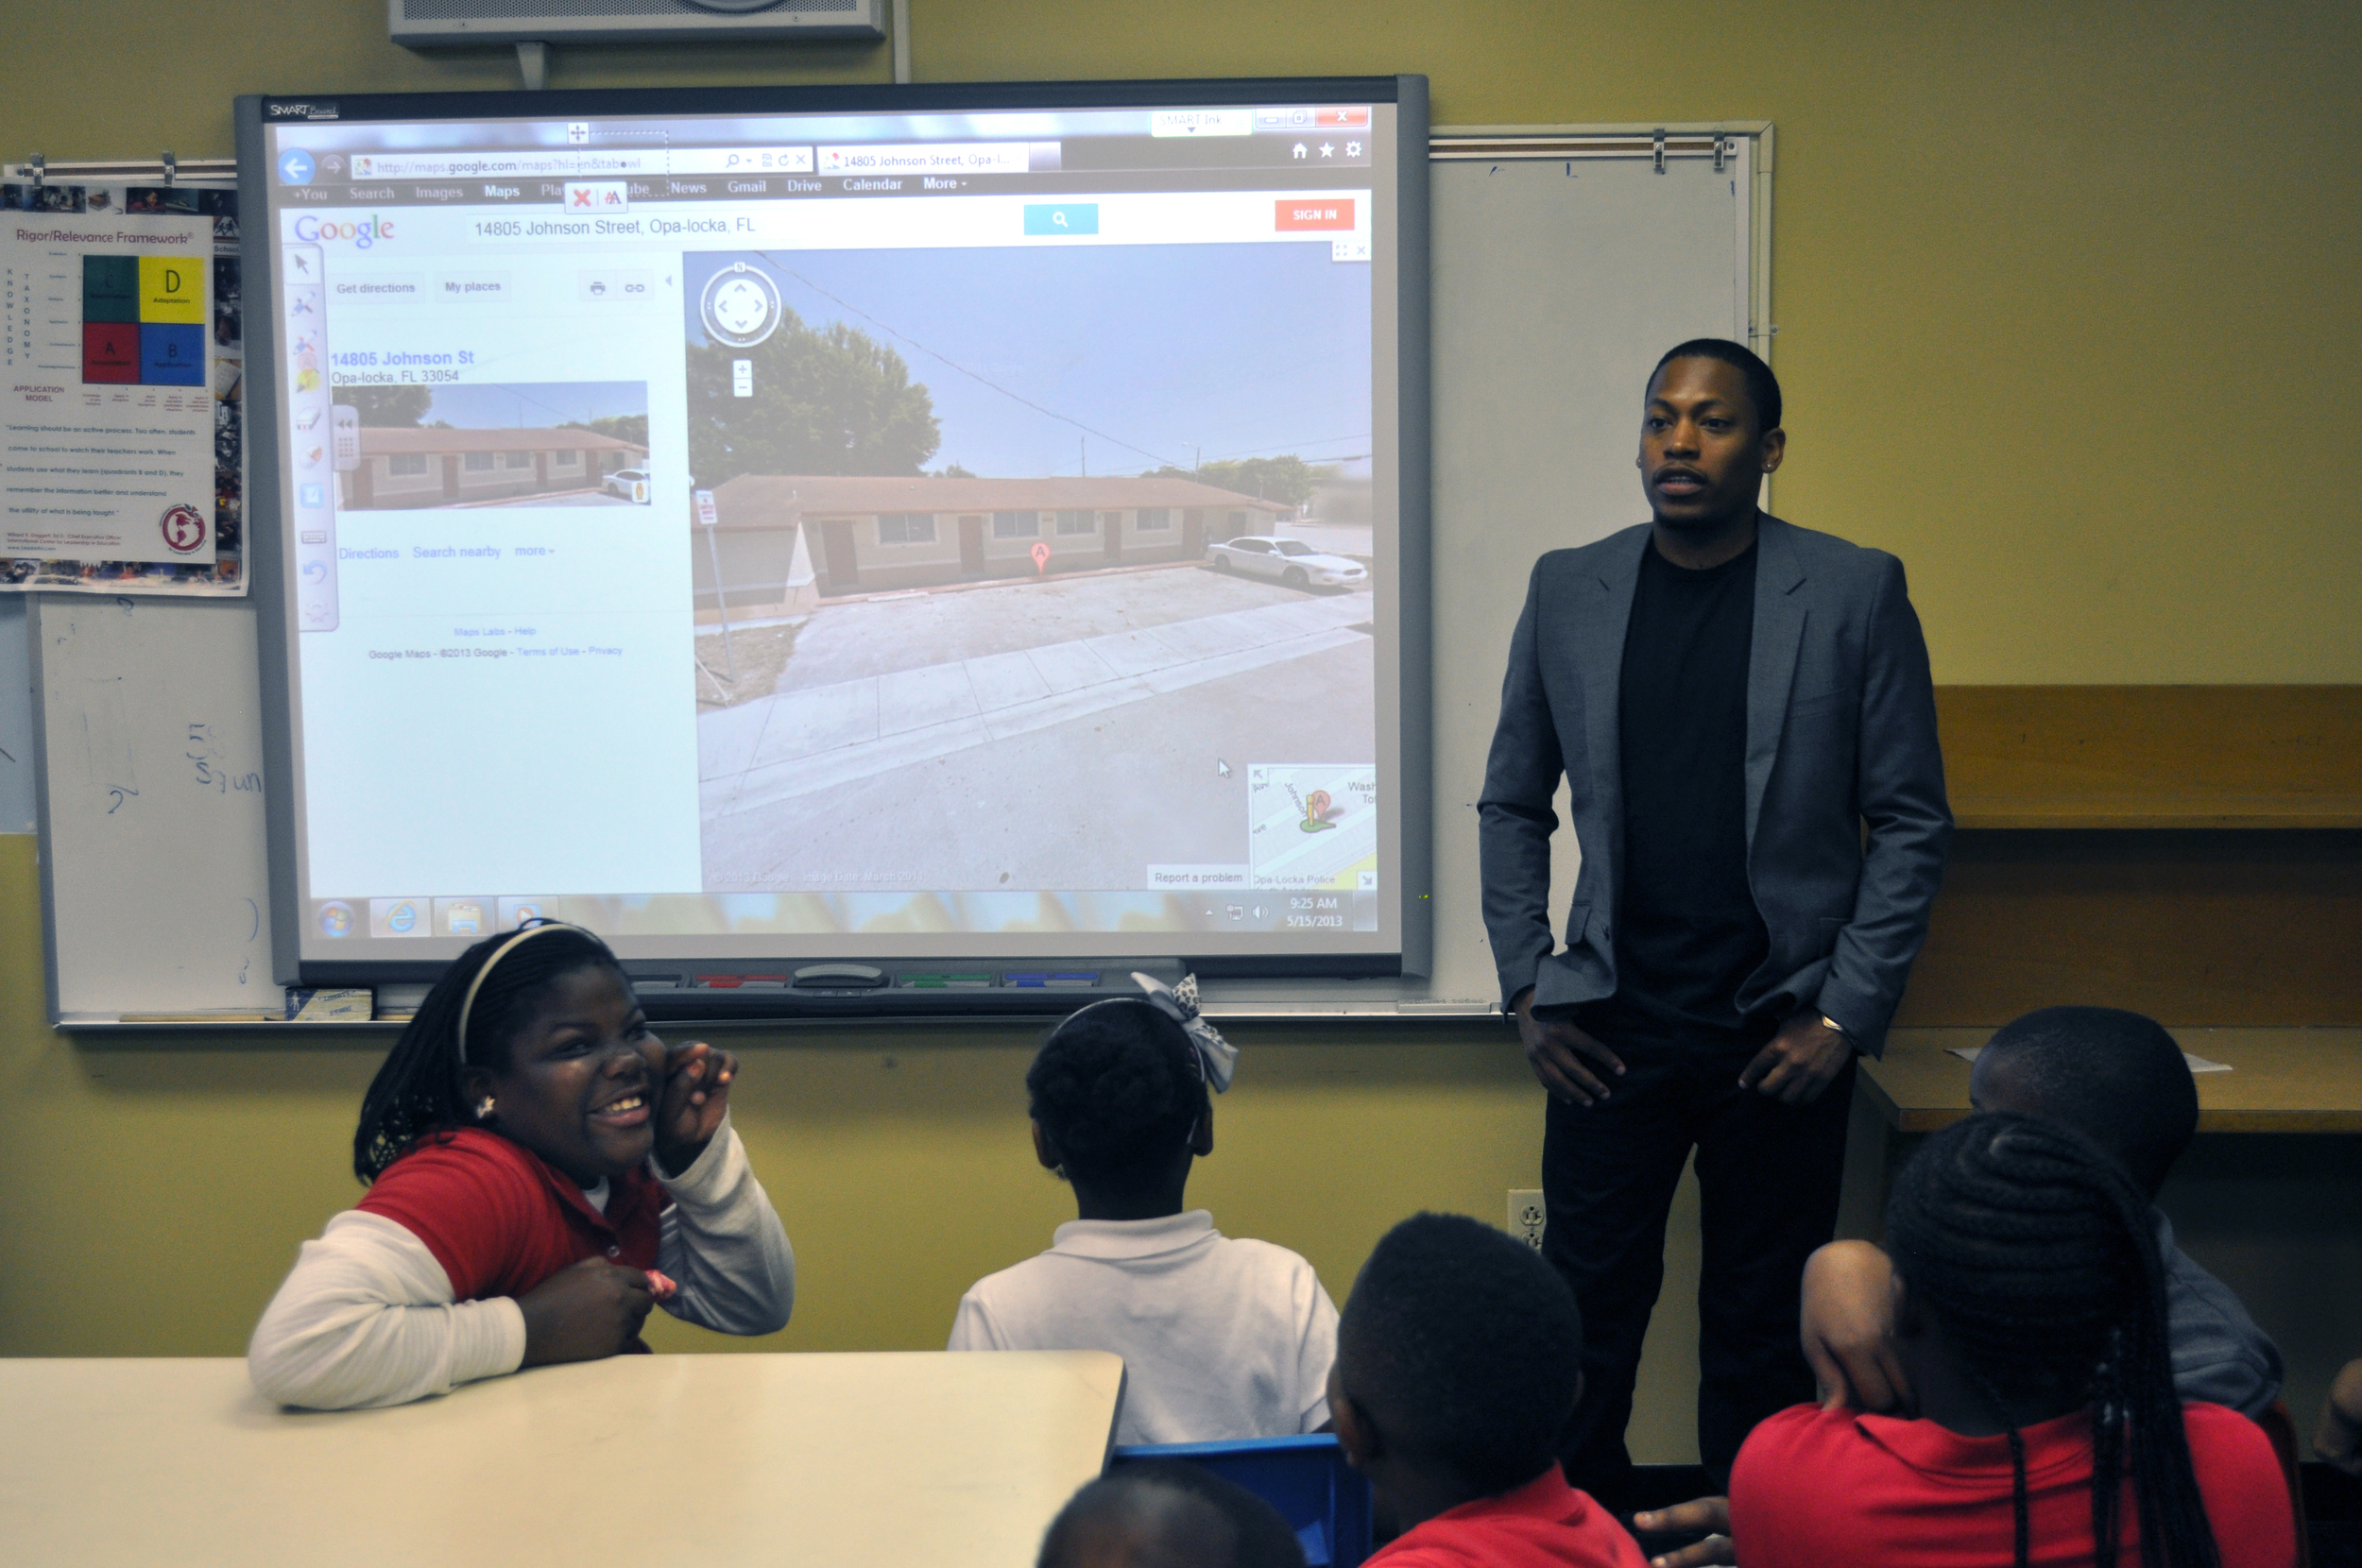 Germane shows students where the first Public House will be located in Magnolia North with Google Maps.